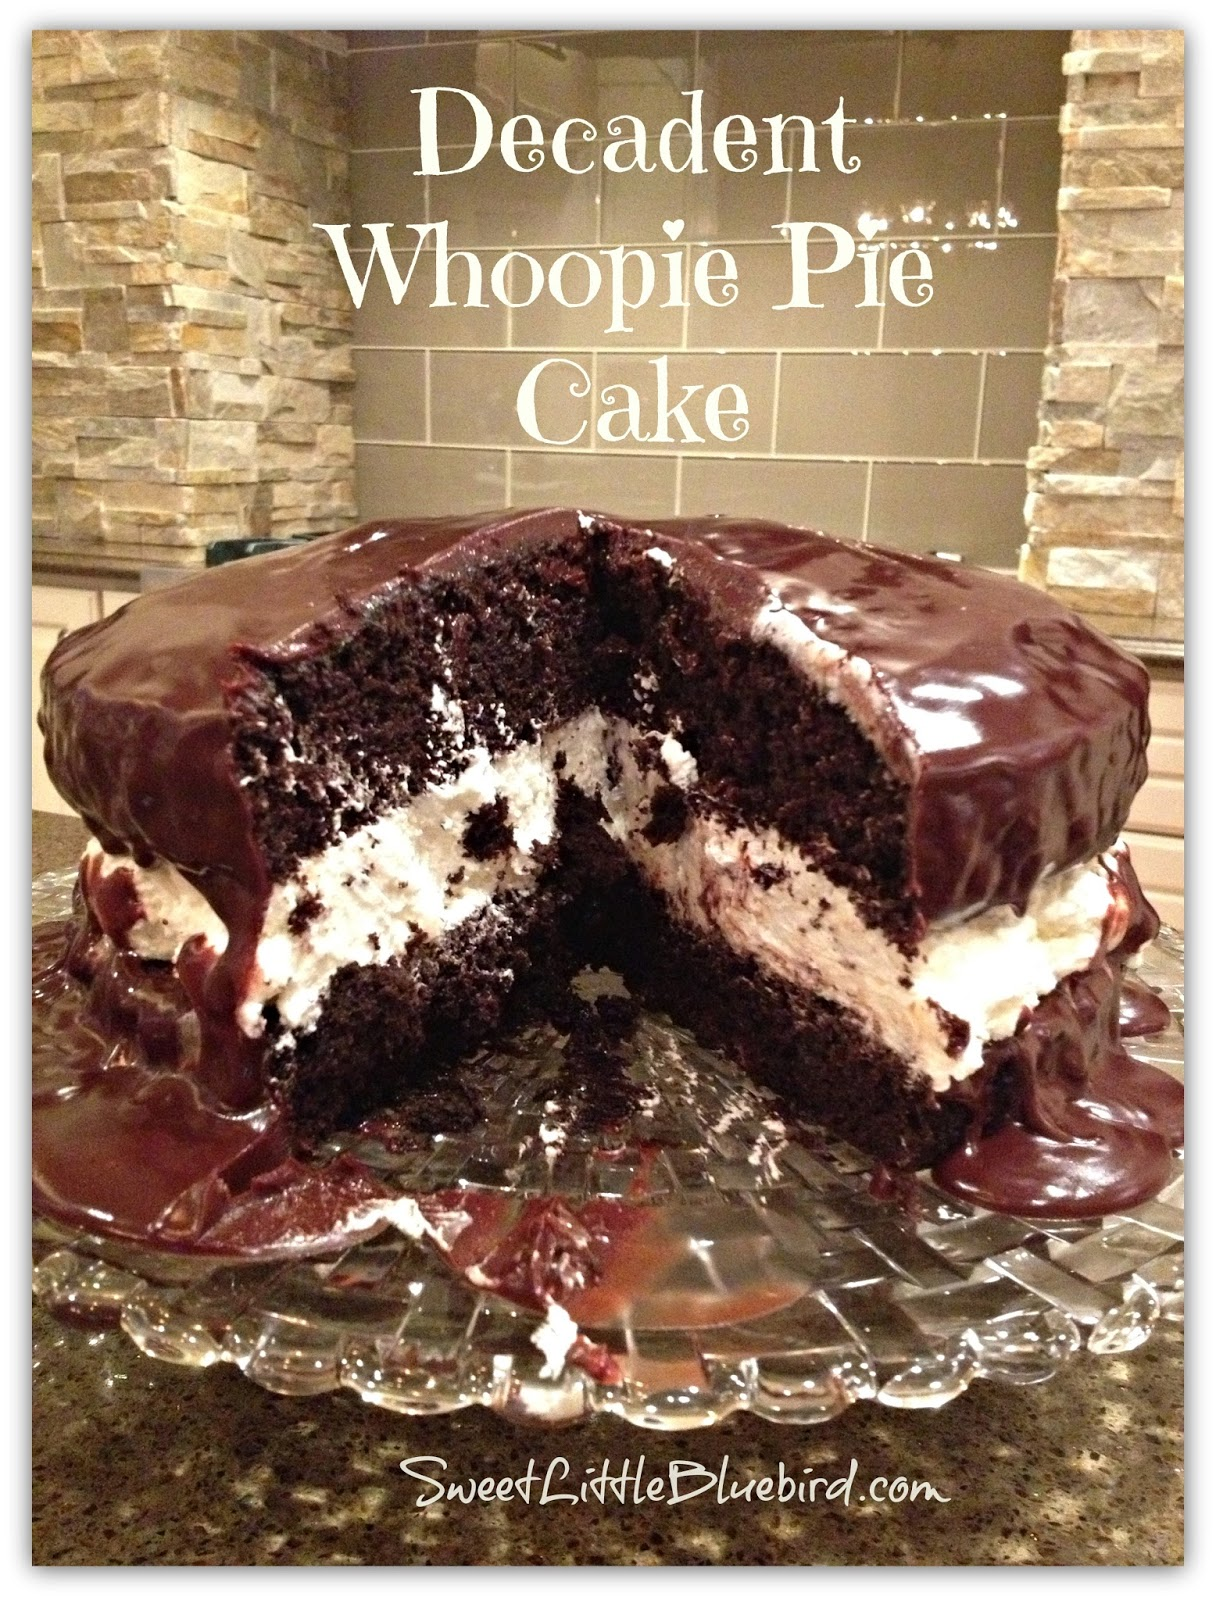 This Cake Is Decadent Delicious And Oh So Good A Go To Family Recipe For Birthdays Dinner Parties Holidays Pinnable Image WHOOPIE PIE